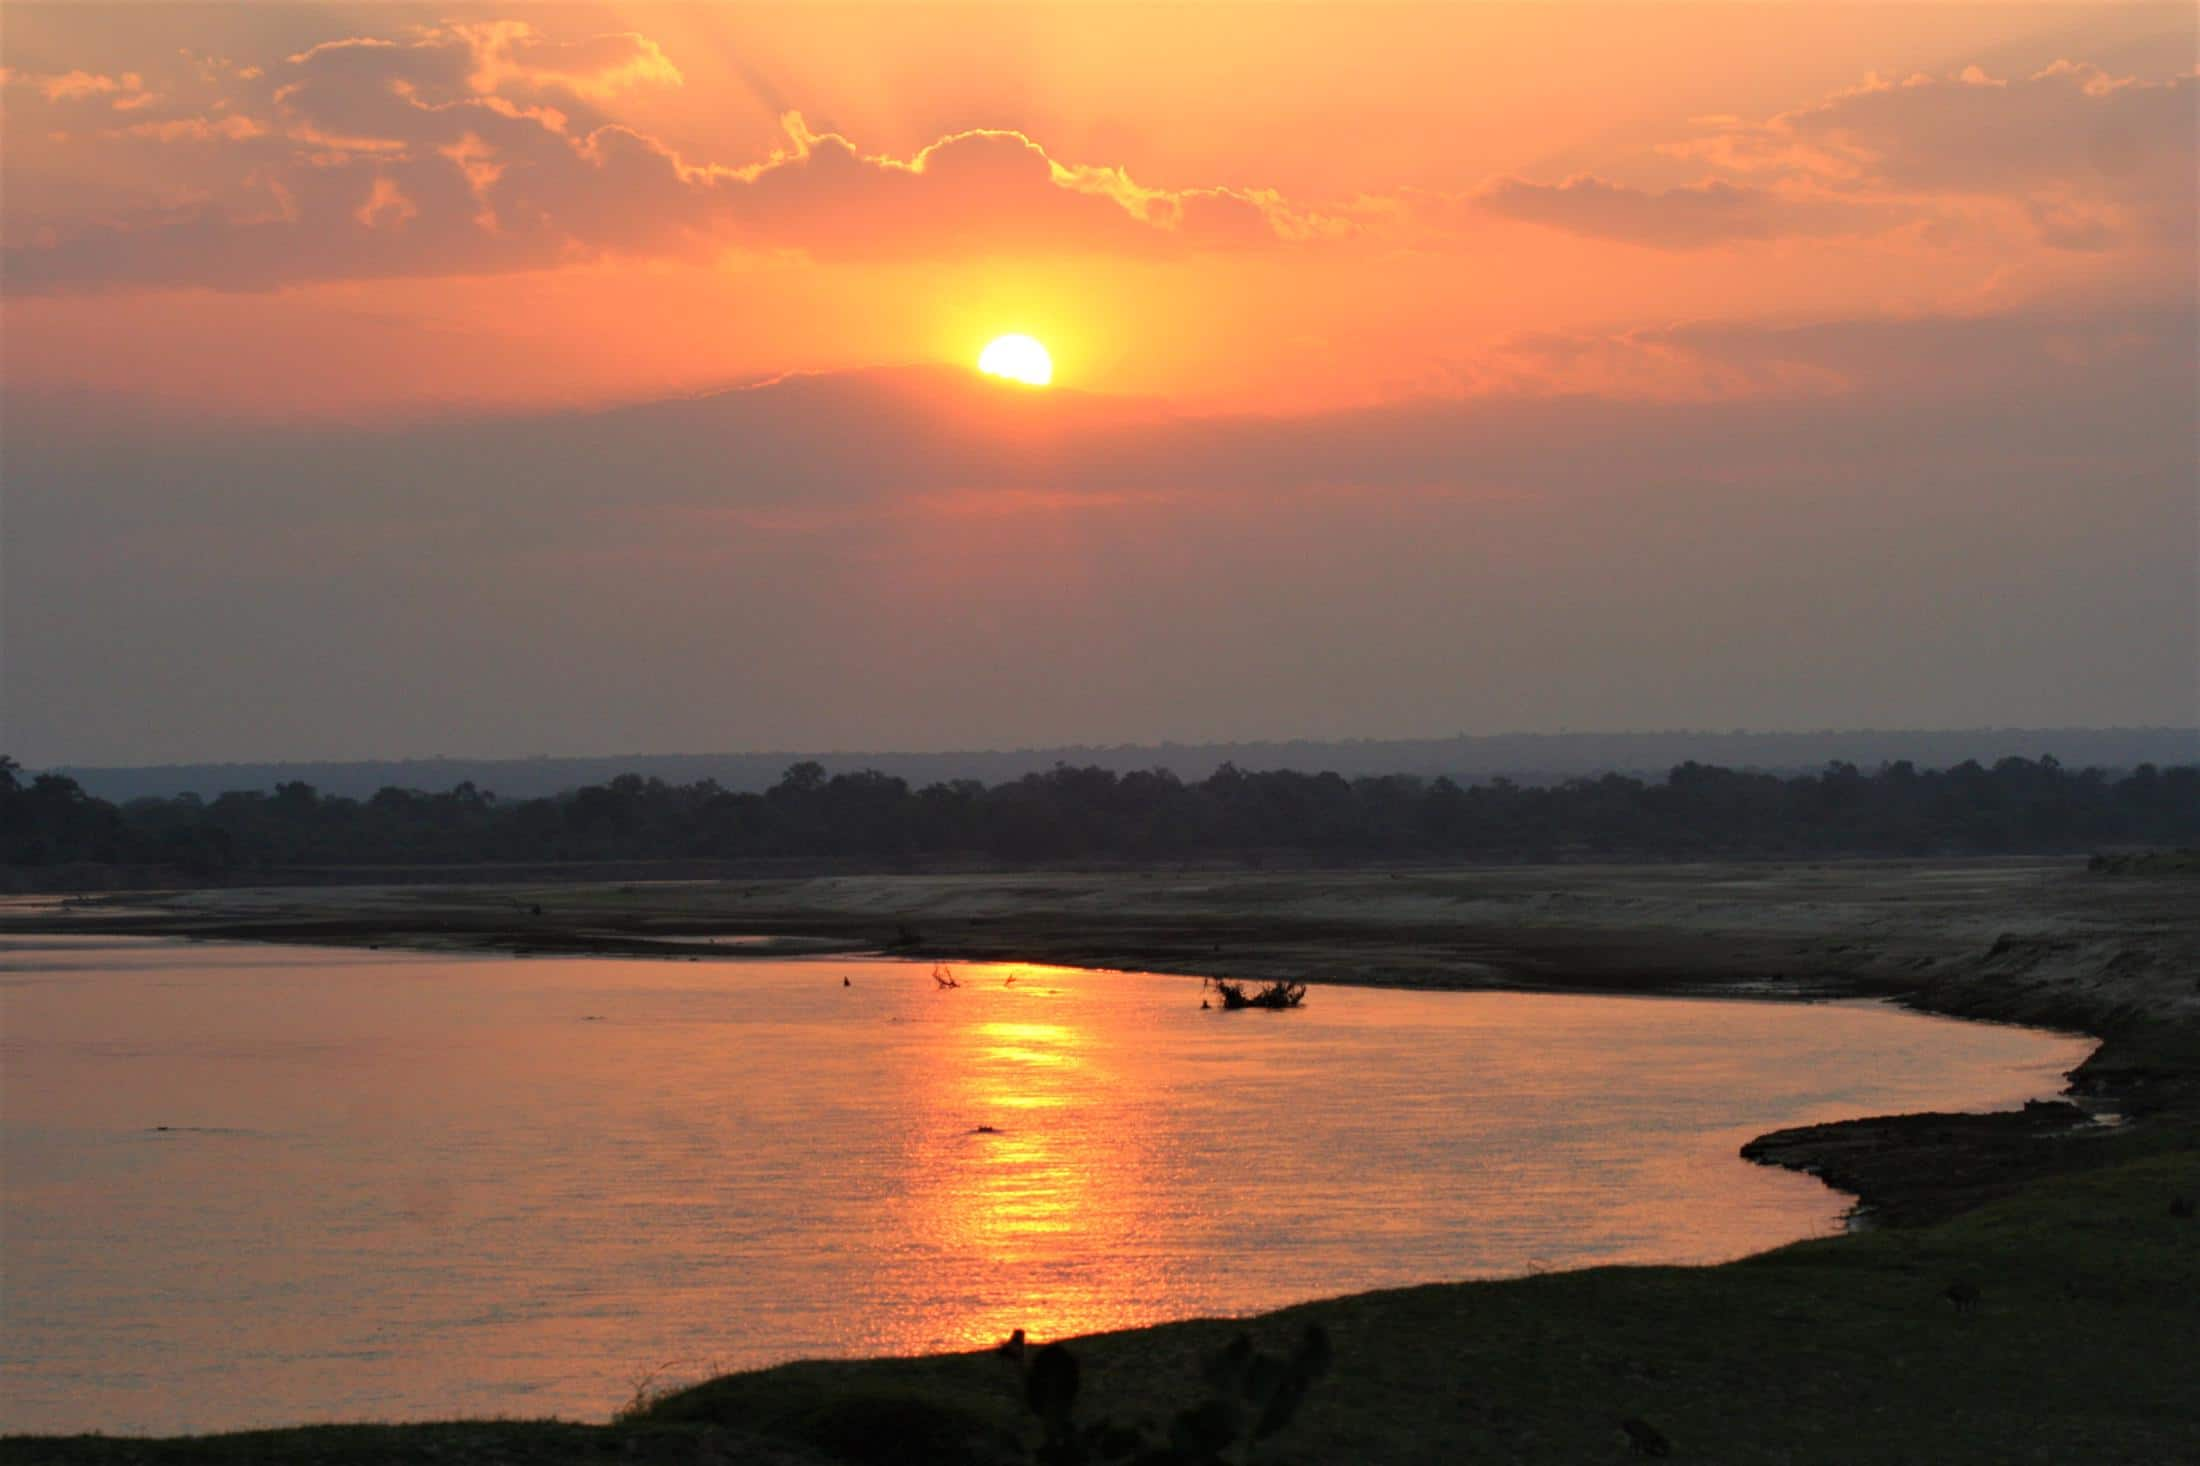 Rondreizen Zambia - Zonsondergang over de Luangwa rivier in South Luangwa NP